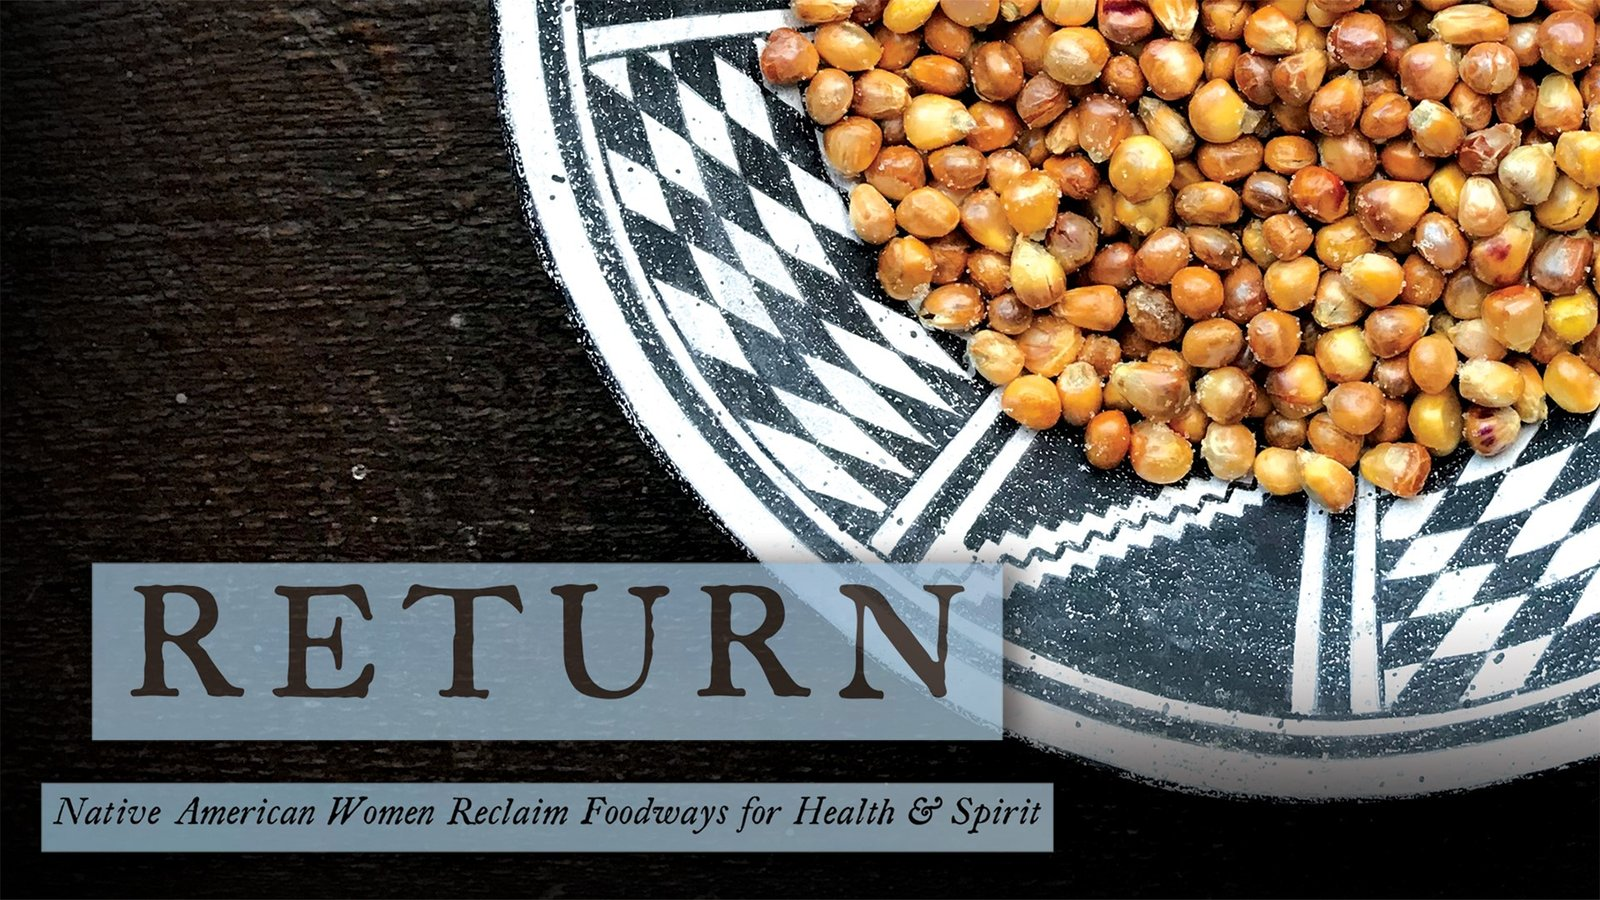 Return: Native American Women Reclaim Foodways for Health & Spirit